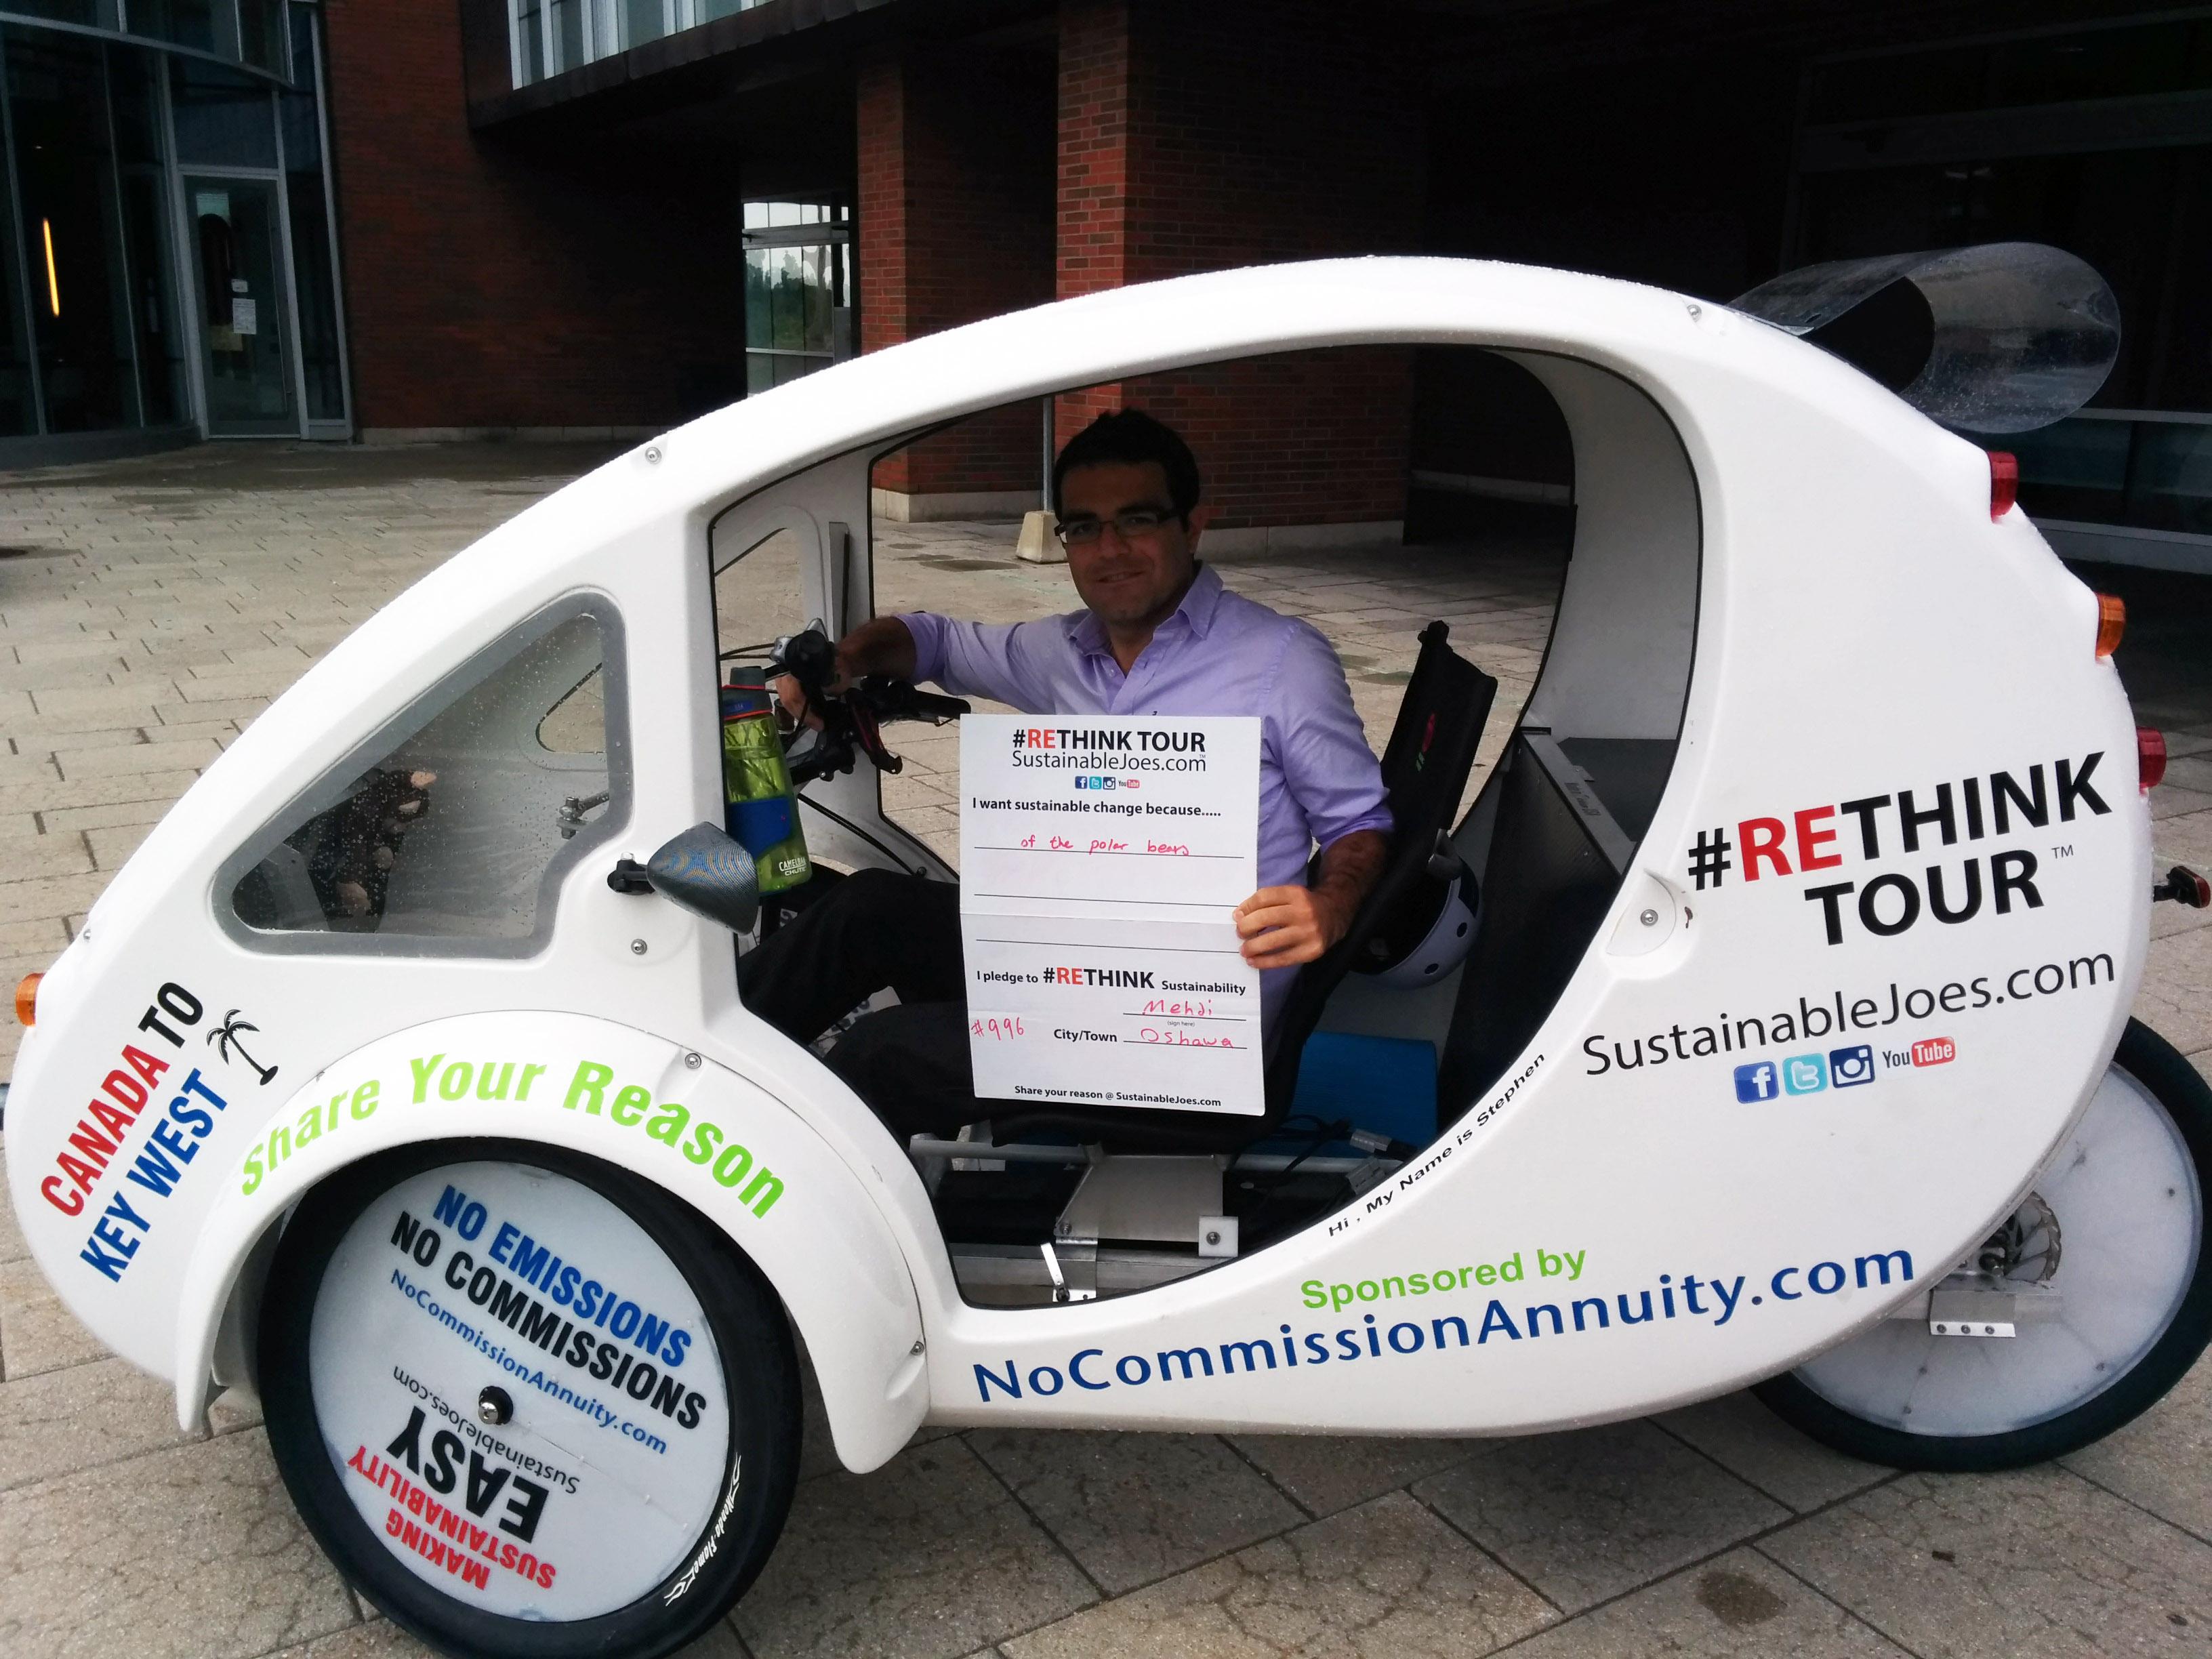 SustainableJoes' #Rethink Tour's Solar Power Tricycle